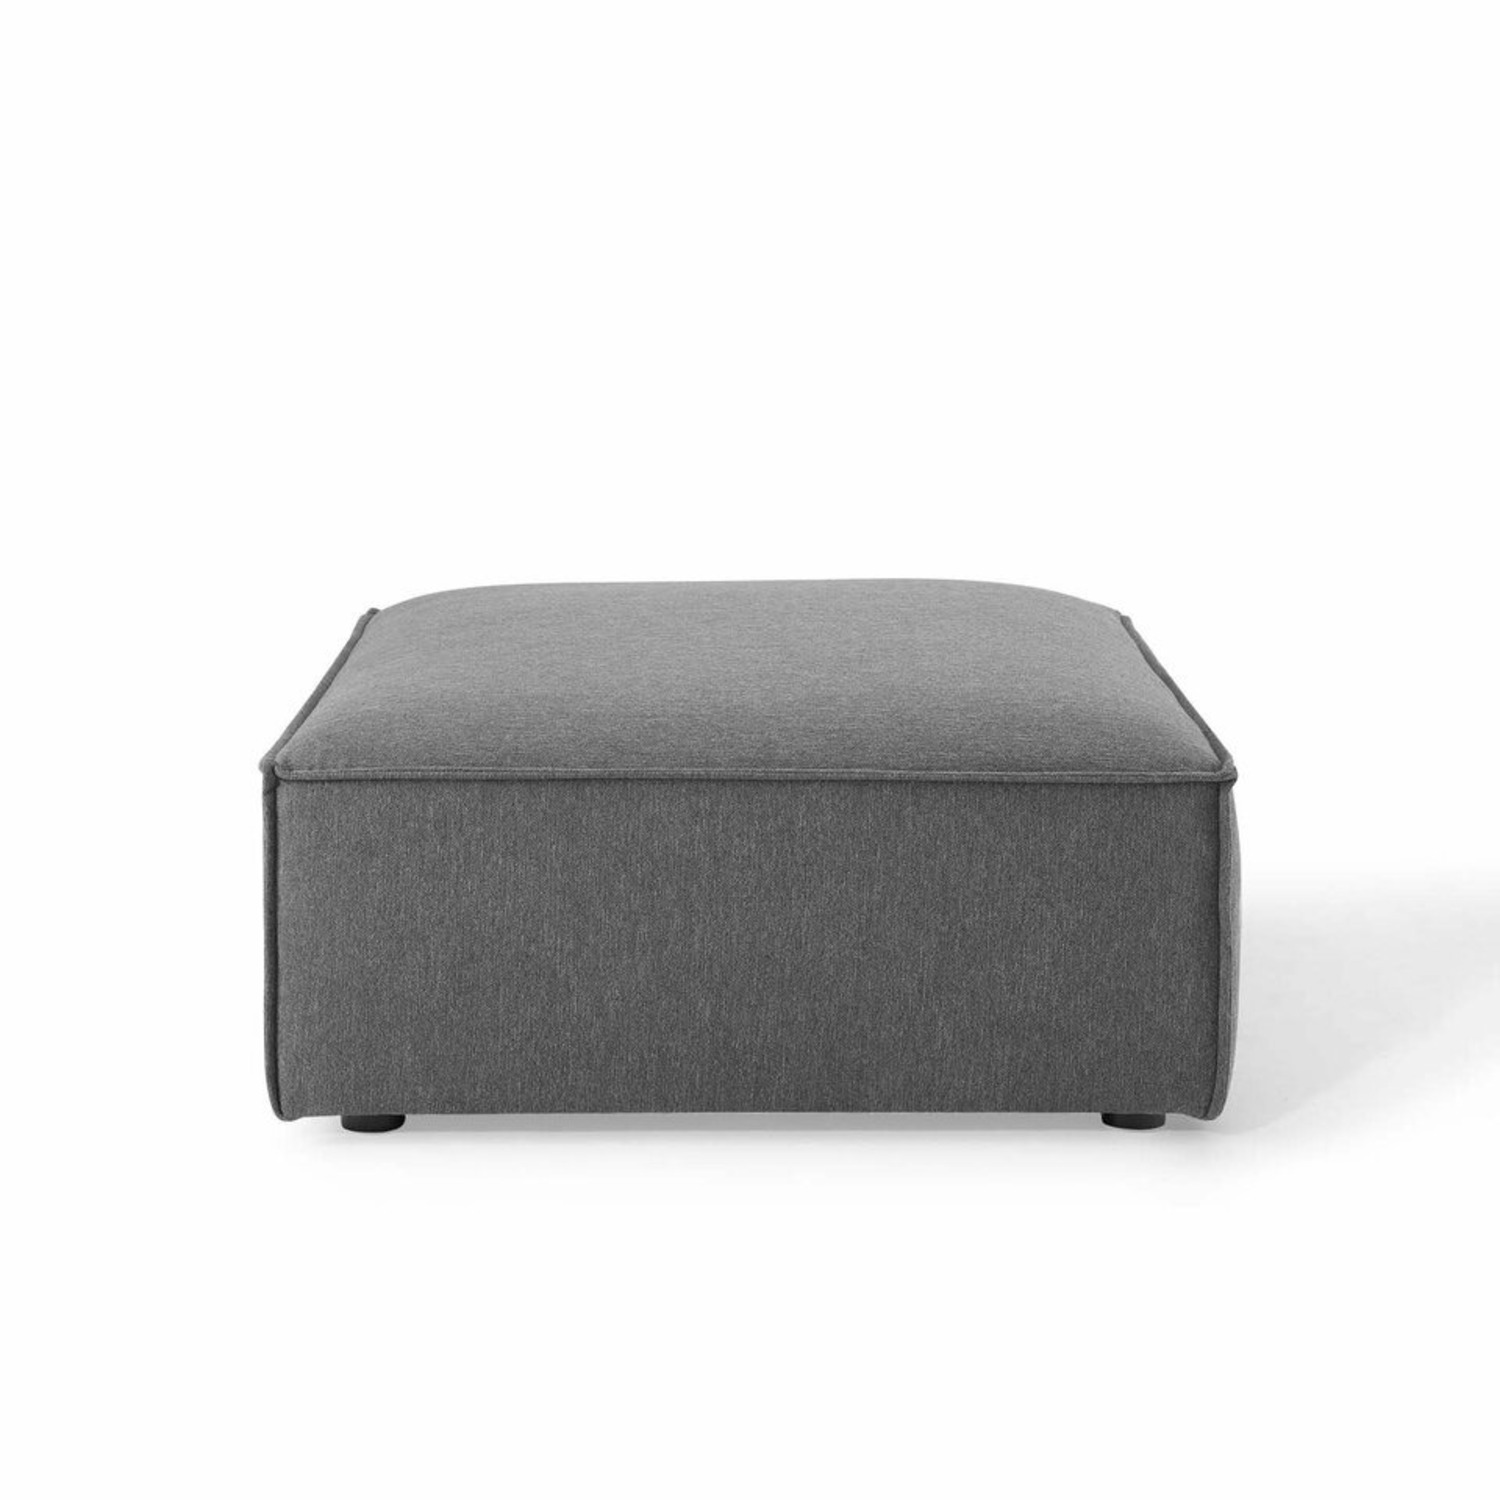 7-Piece Sectional Sofa In Charcoal Upholstery - image-10